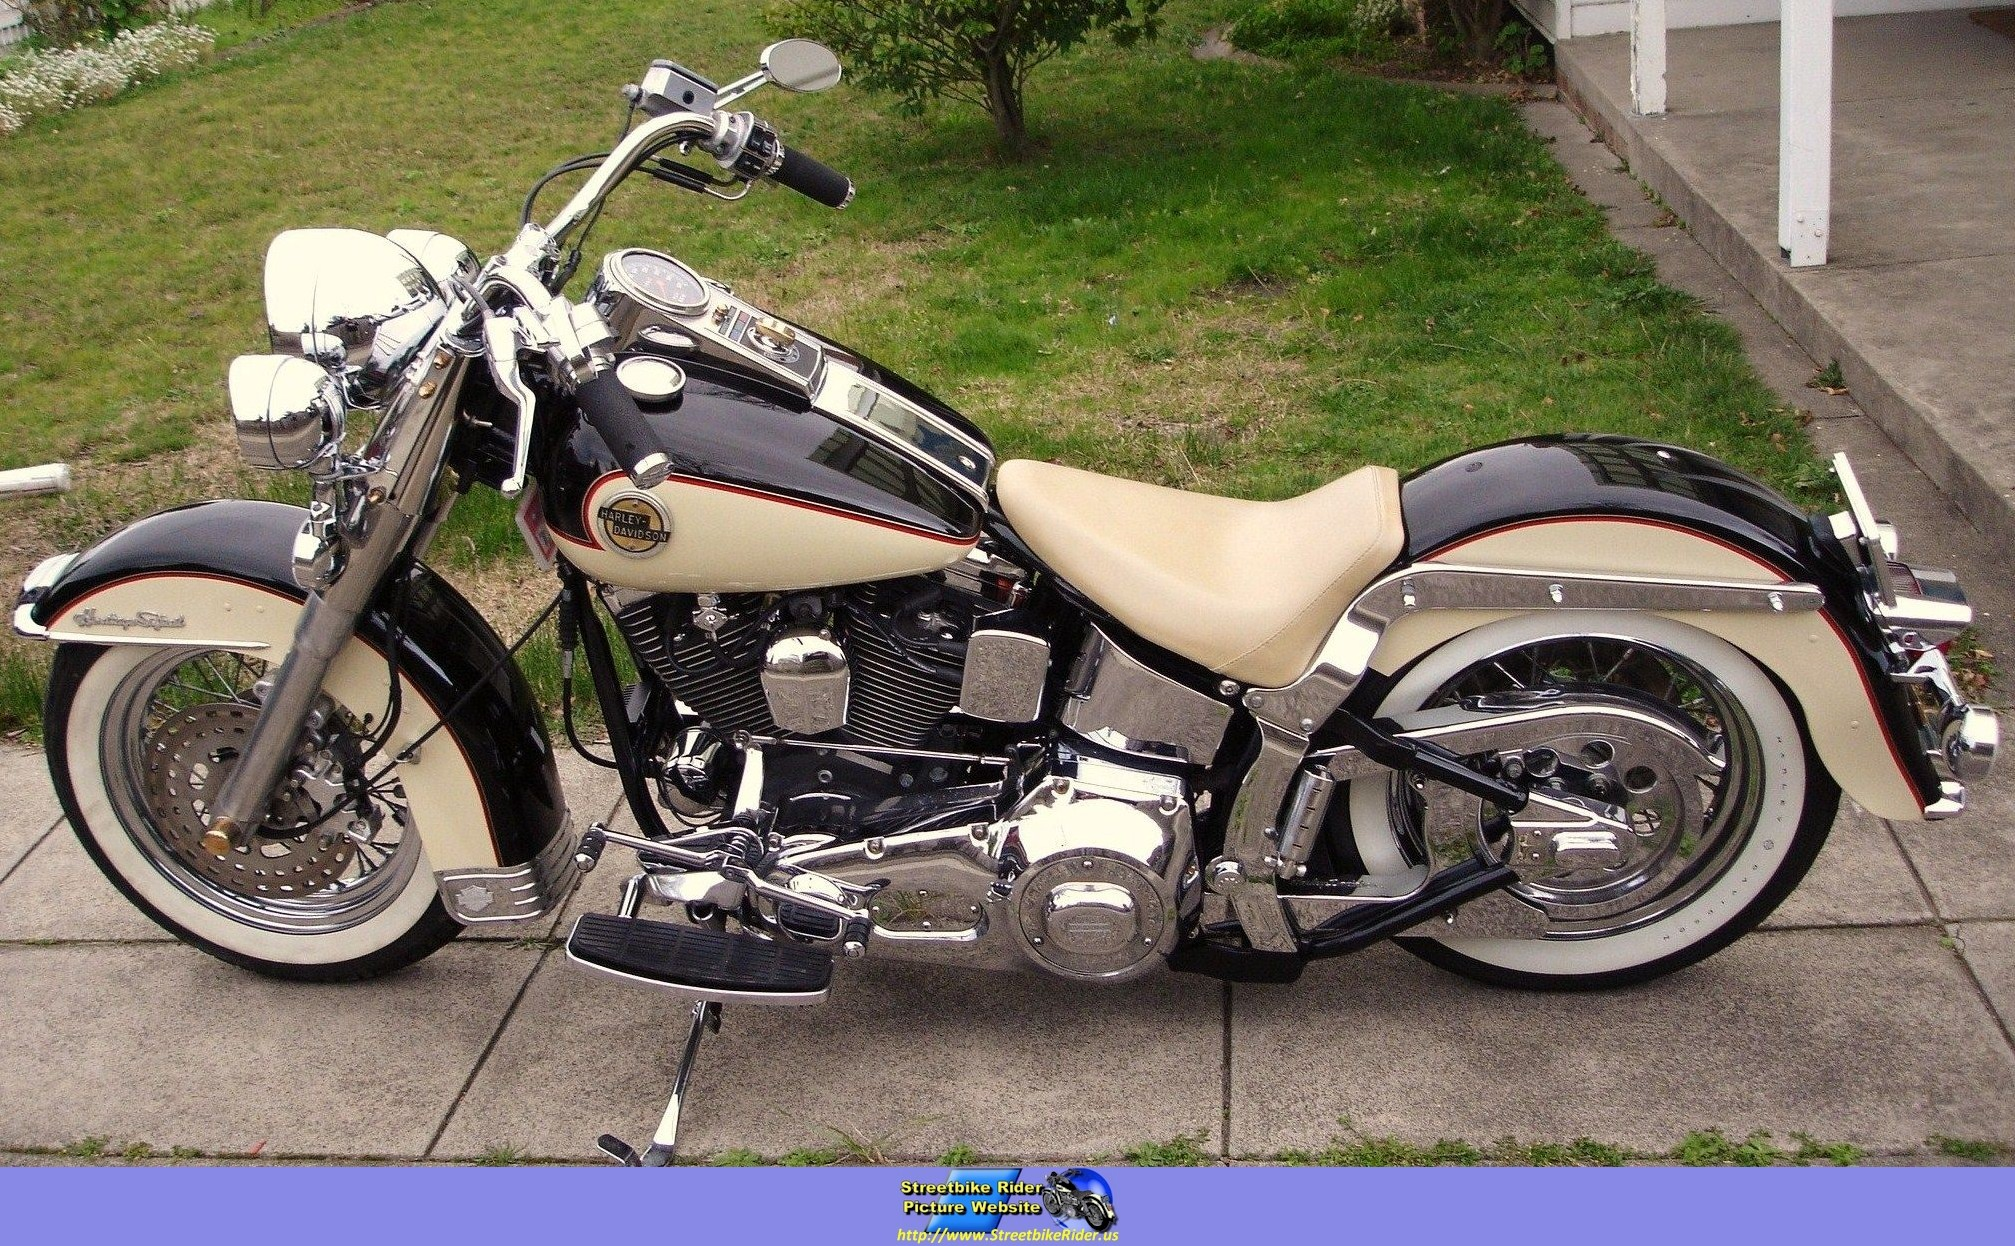 Harley Davidson Softail Deluxe For Sale On Ebay